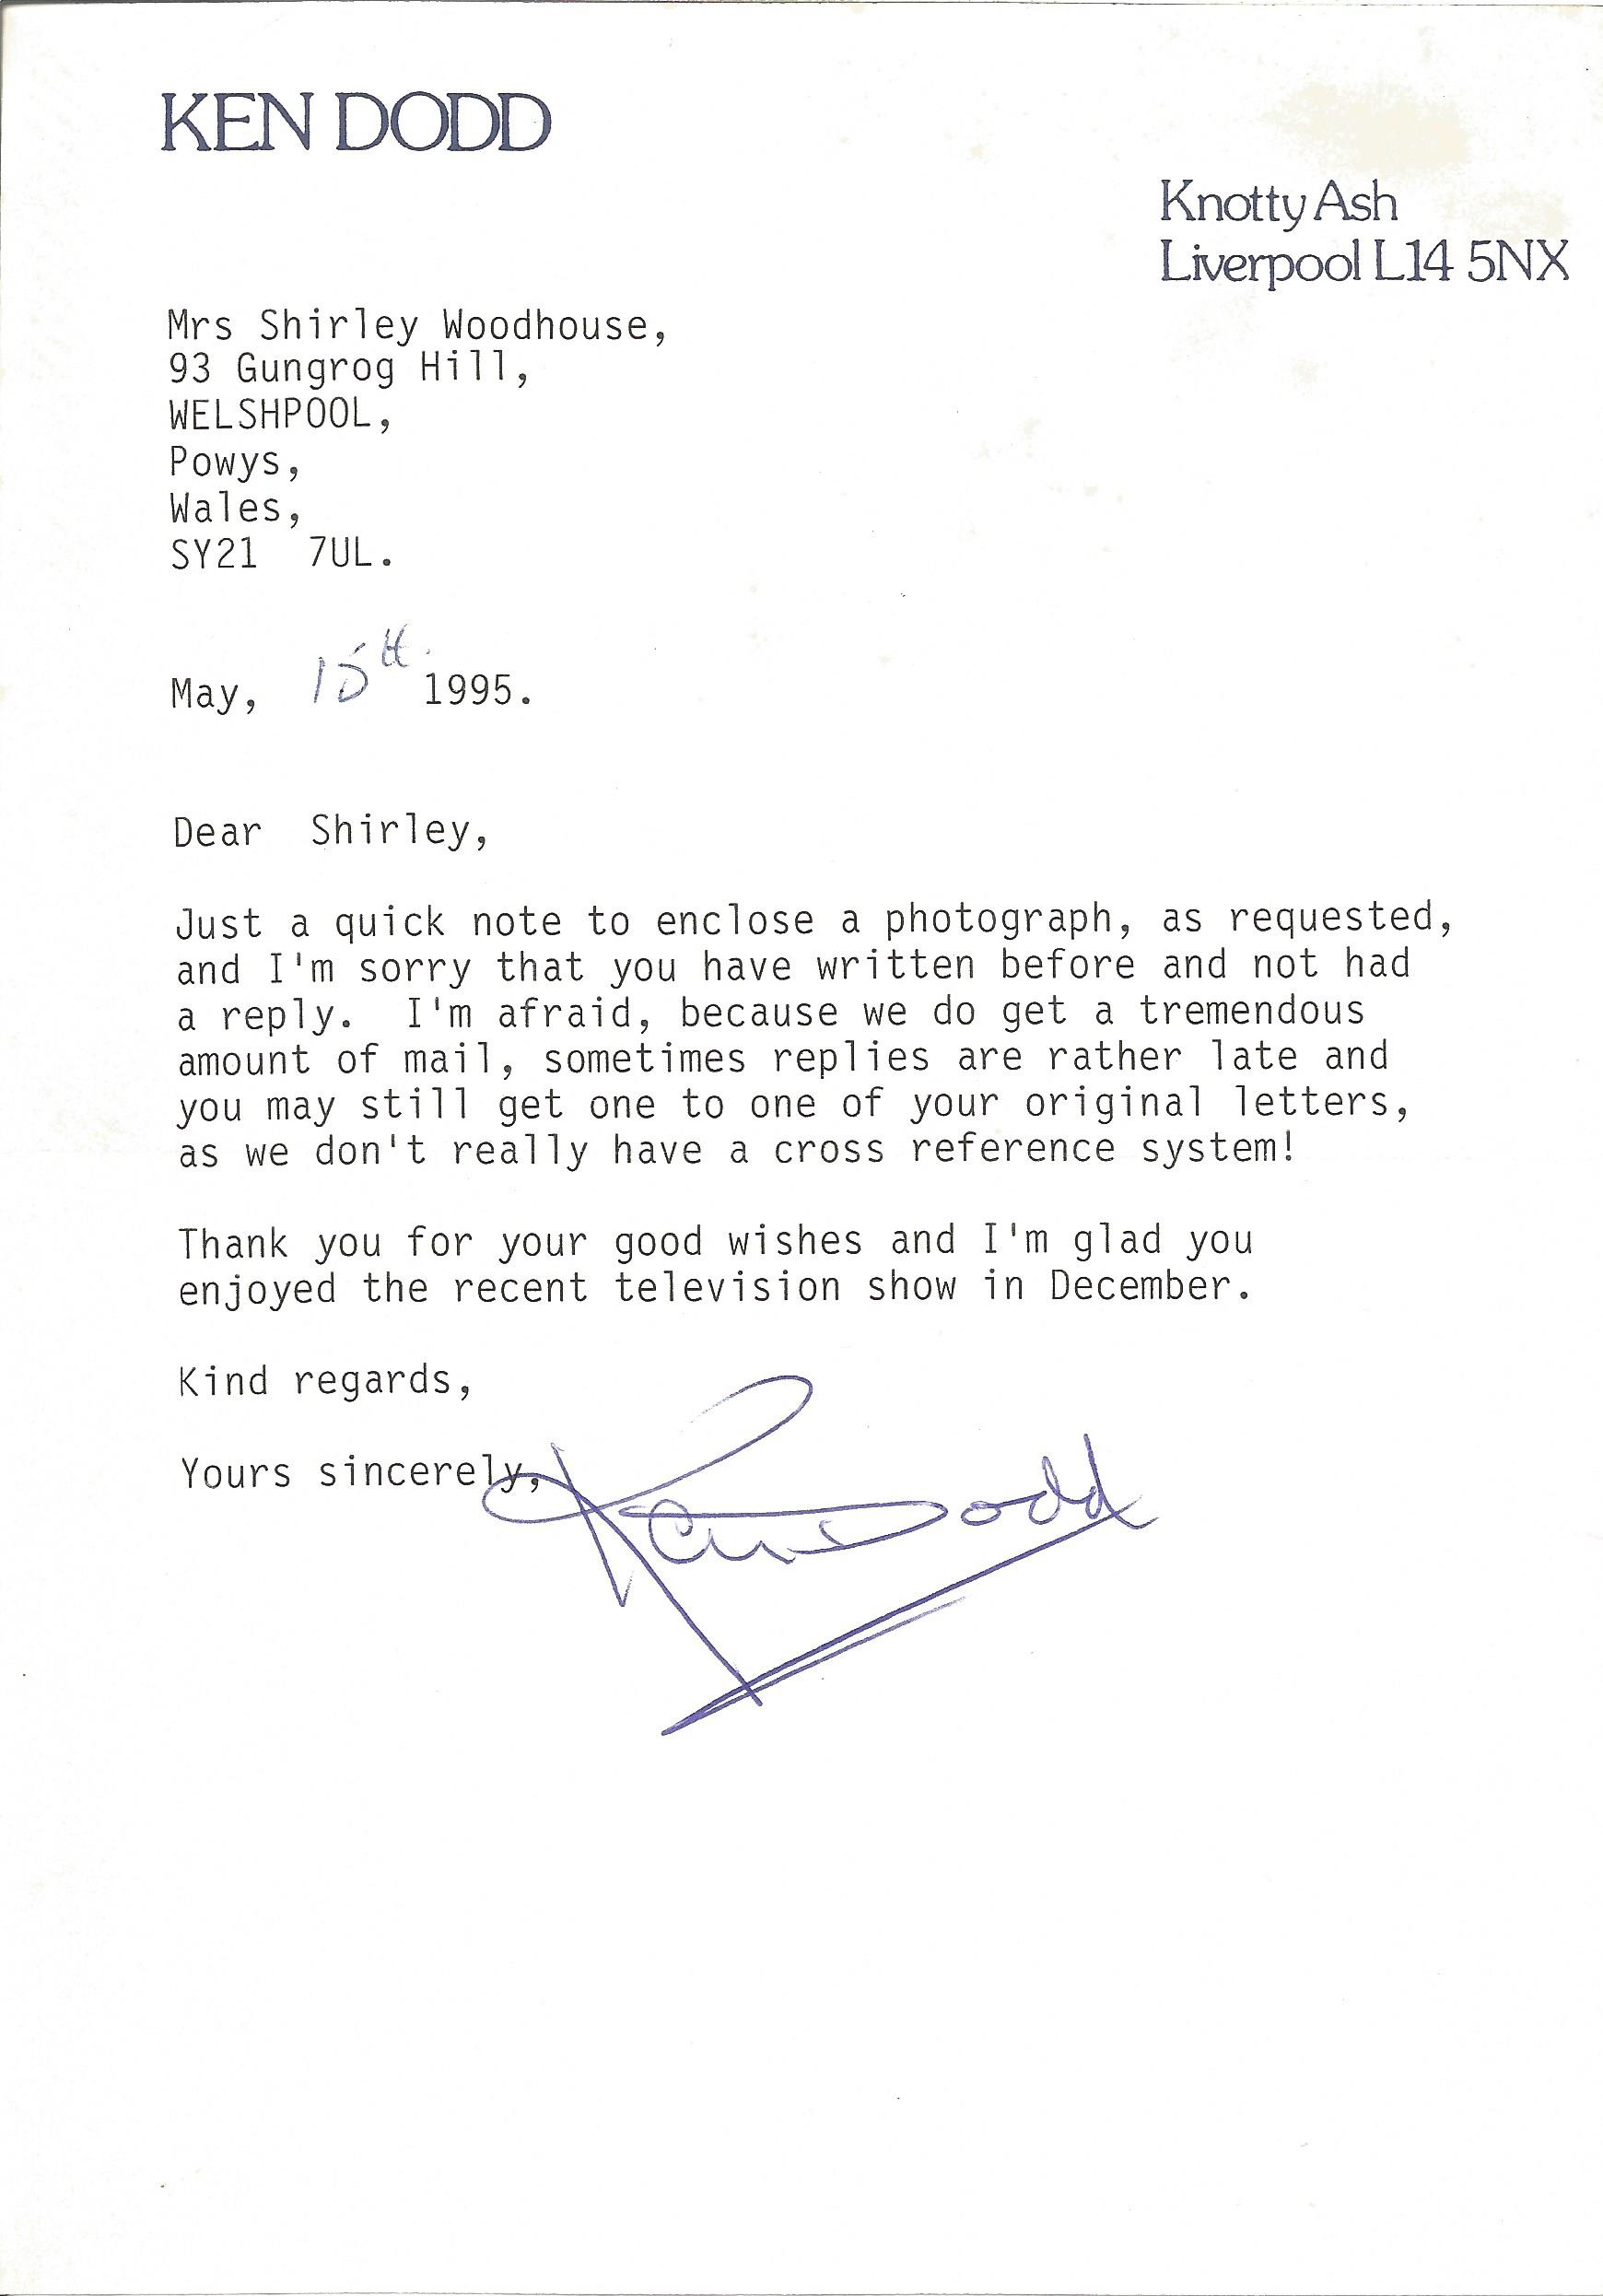 Comedian Ken Dodd signed and dated headed paper apologising for his late reply and sending a